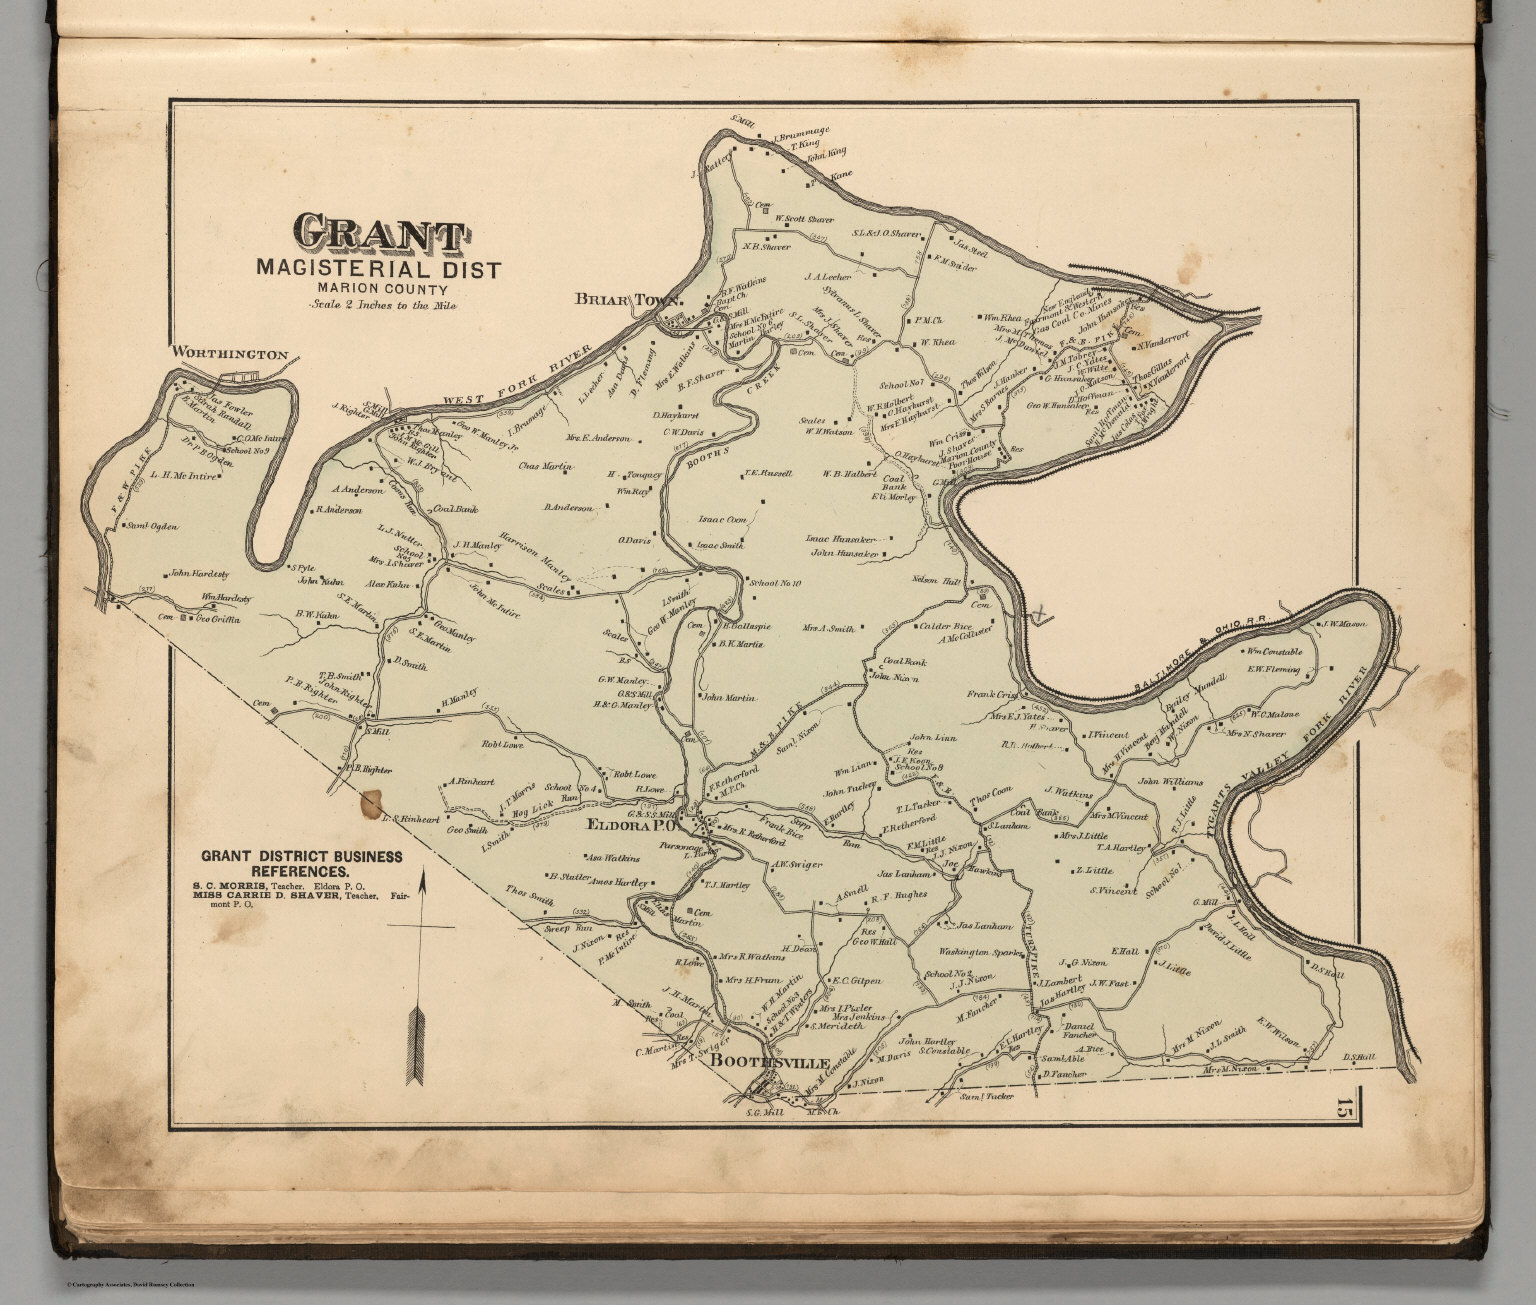 Marion Virginia Map.Grant Magisterial District Marion County West Virginia David